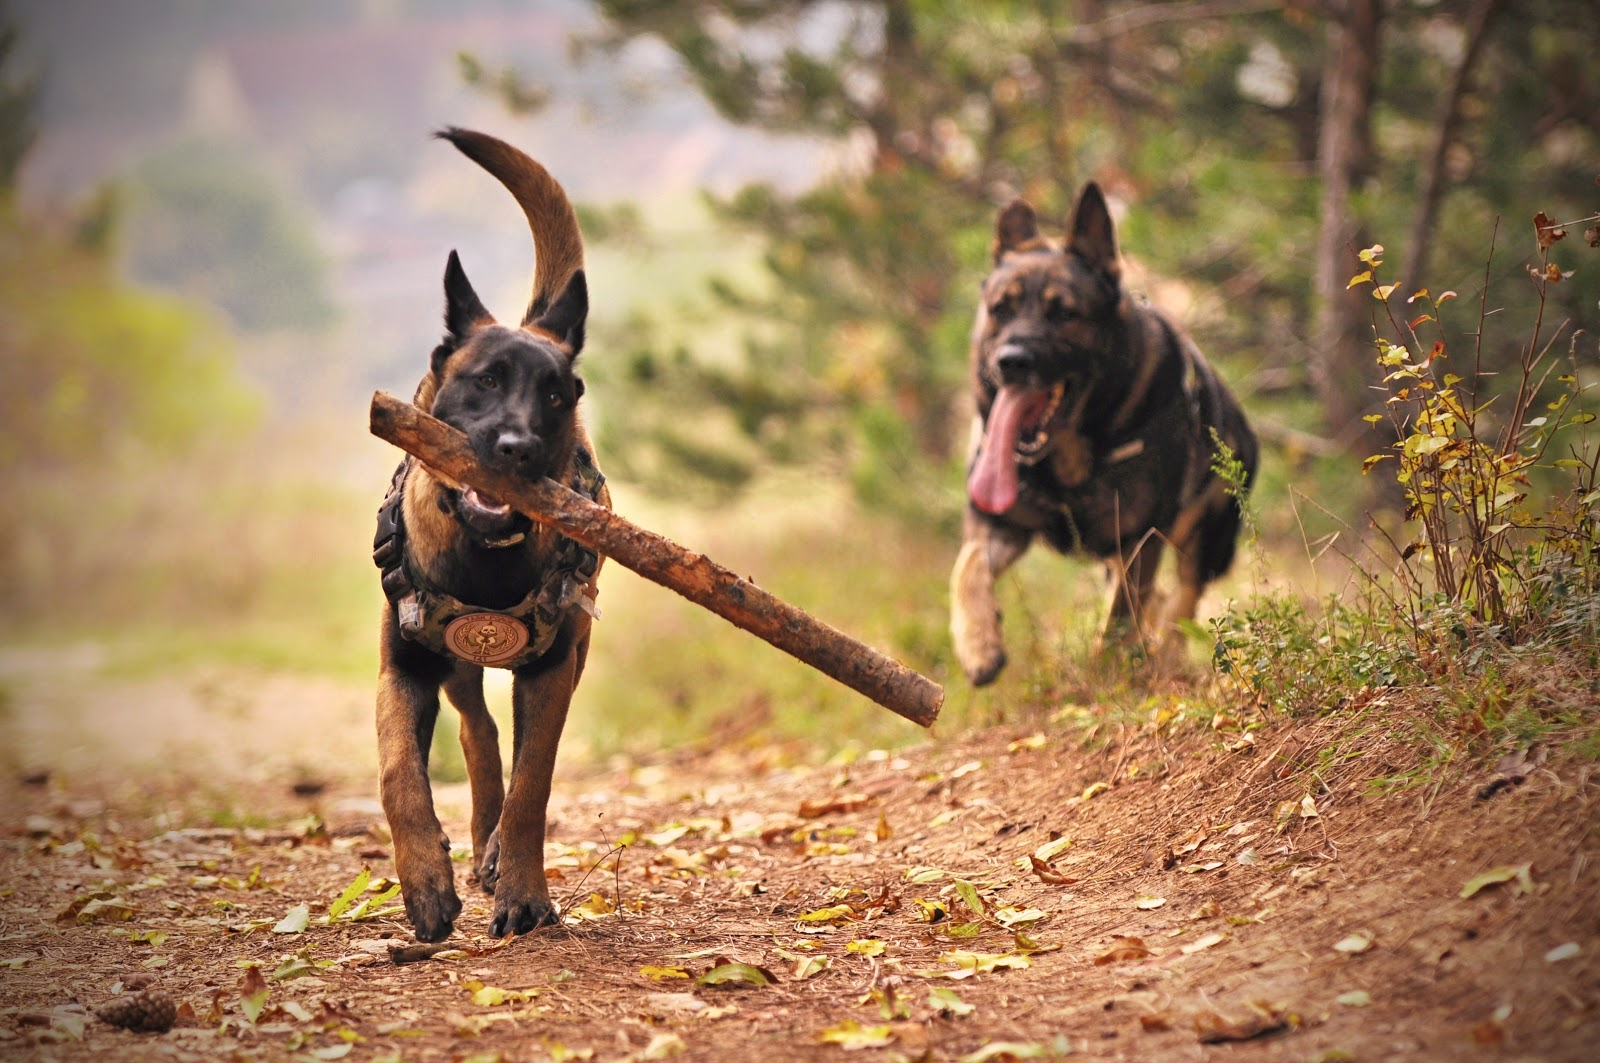 Two German shepards running, one carrying a stick